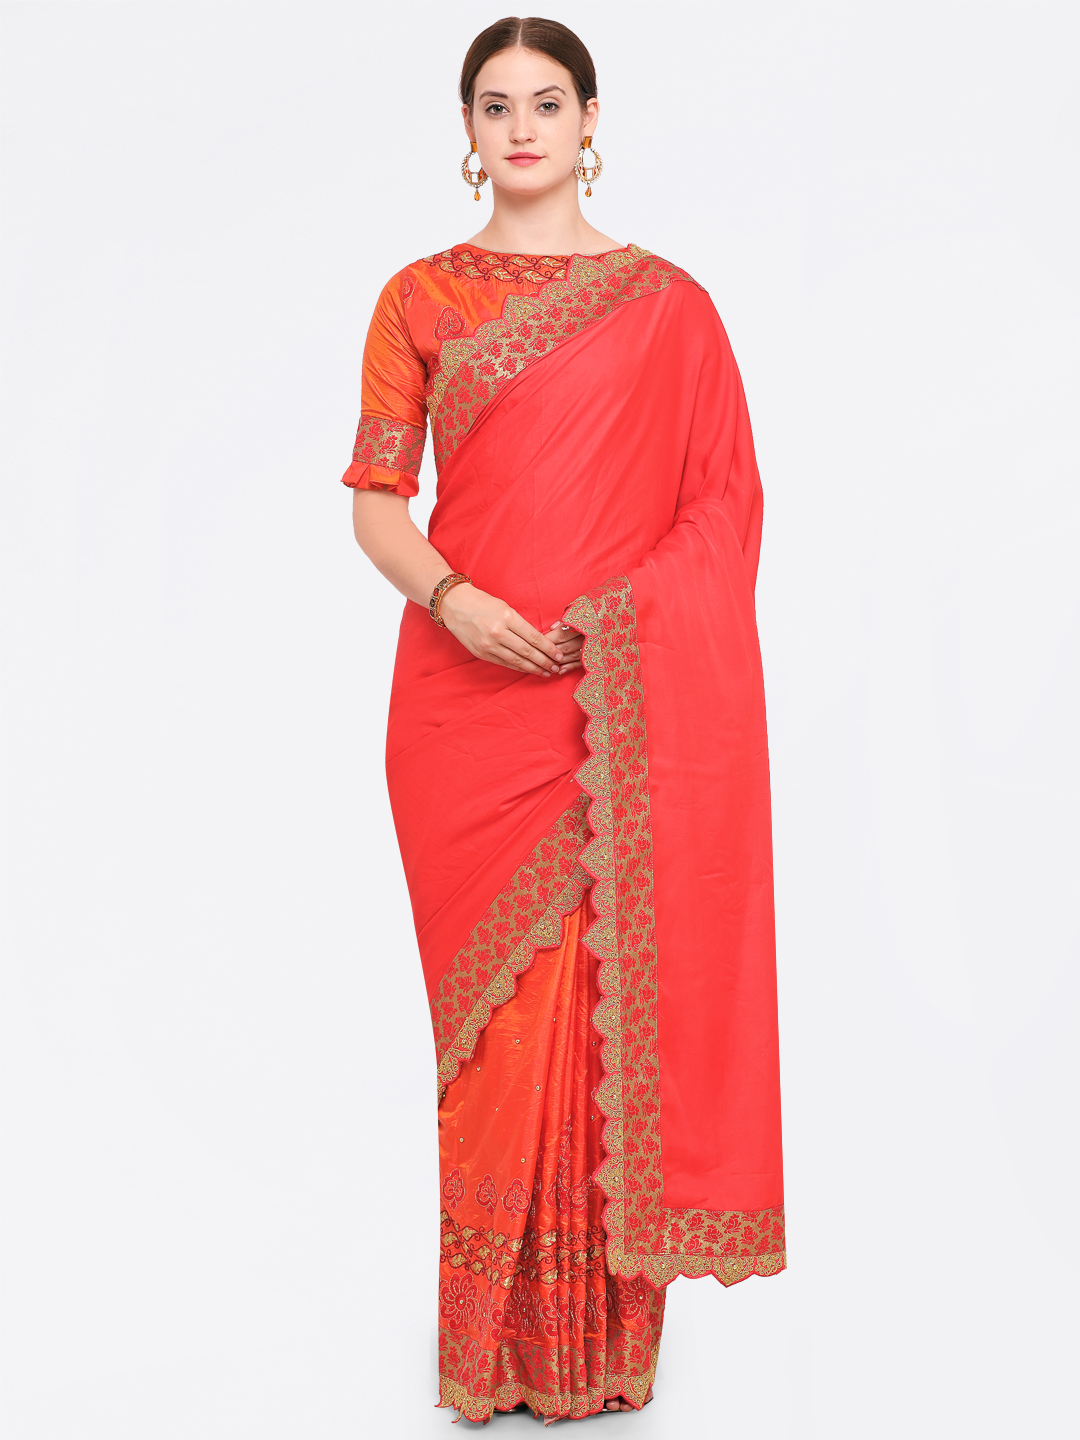 8c174651dfad28 Buy Indian Women Red & Orange Pure Georgette Embroidered Saree ...